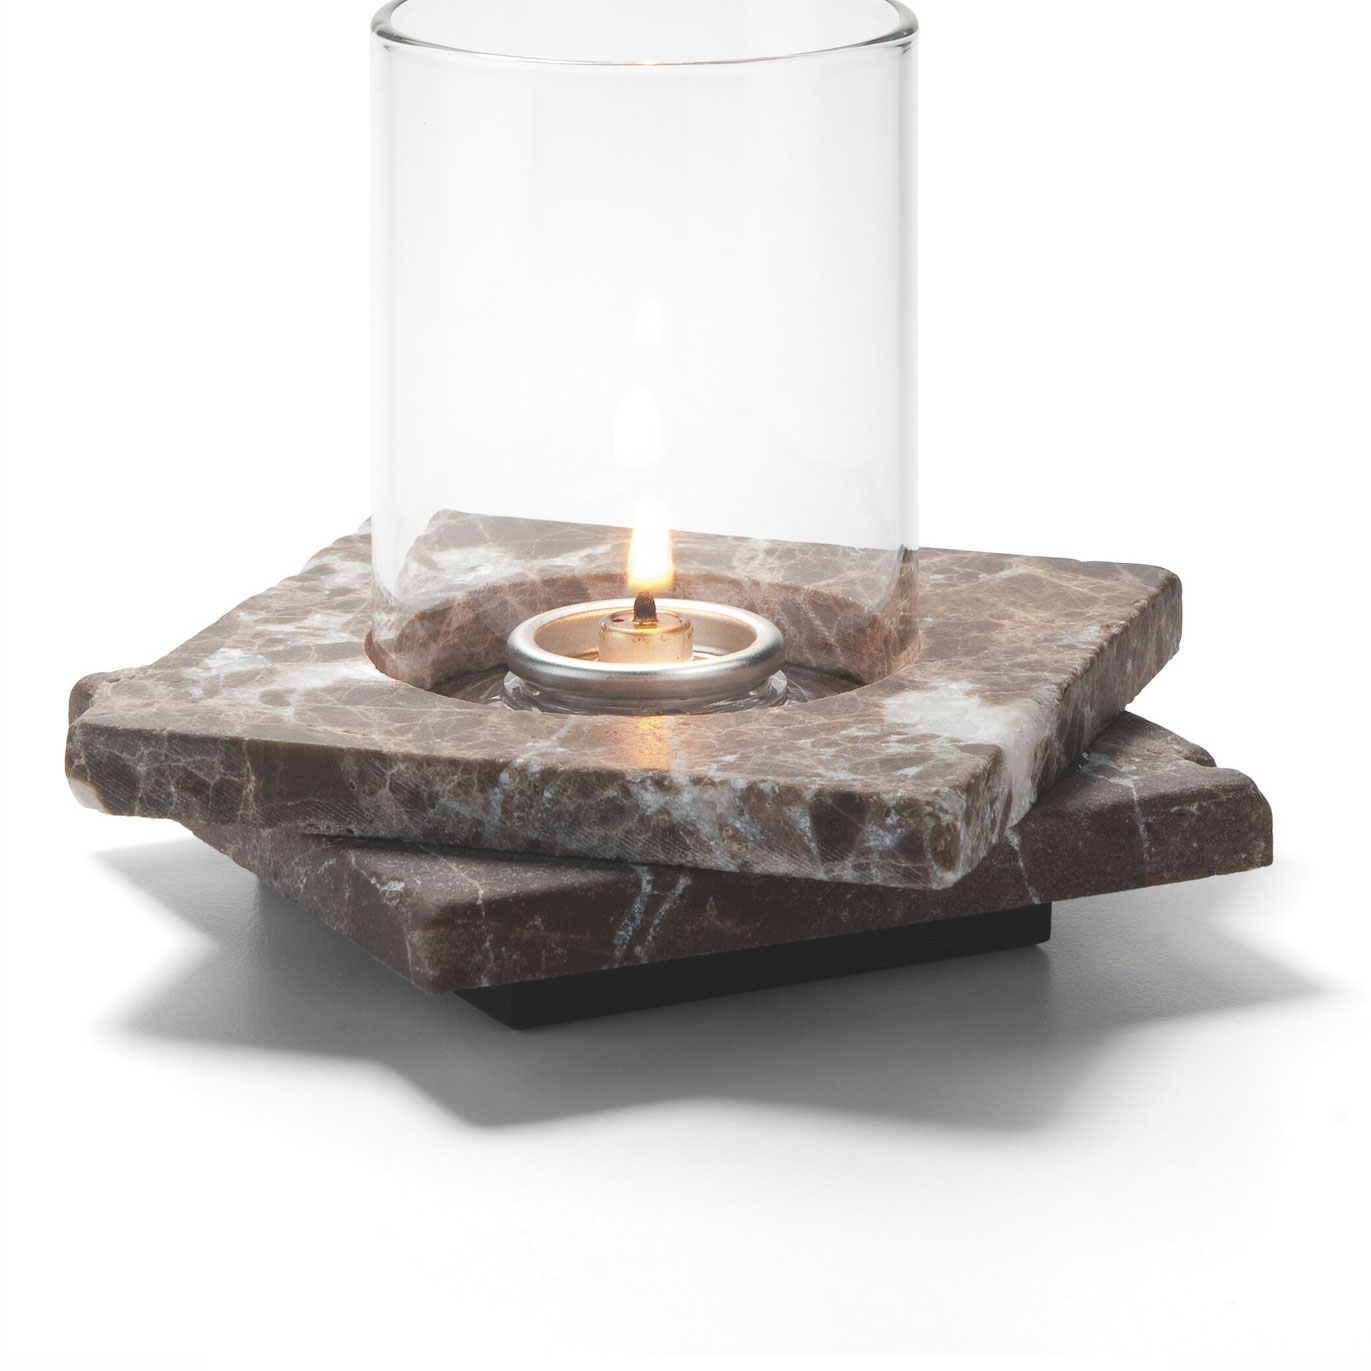 "Hollowick ZEN-DEM2 Double Zen Lamp Base for 78C & 78SC, 5.5x1.25"", Stone, Dark Emperador"